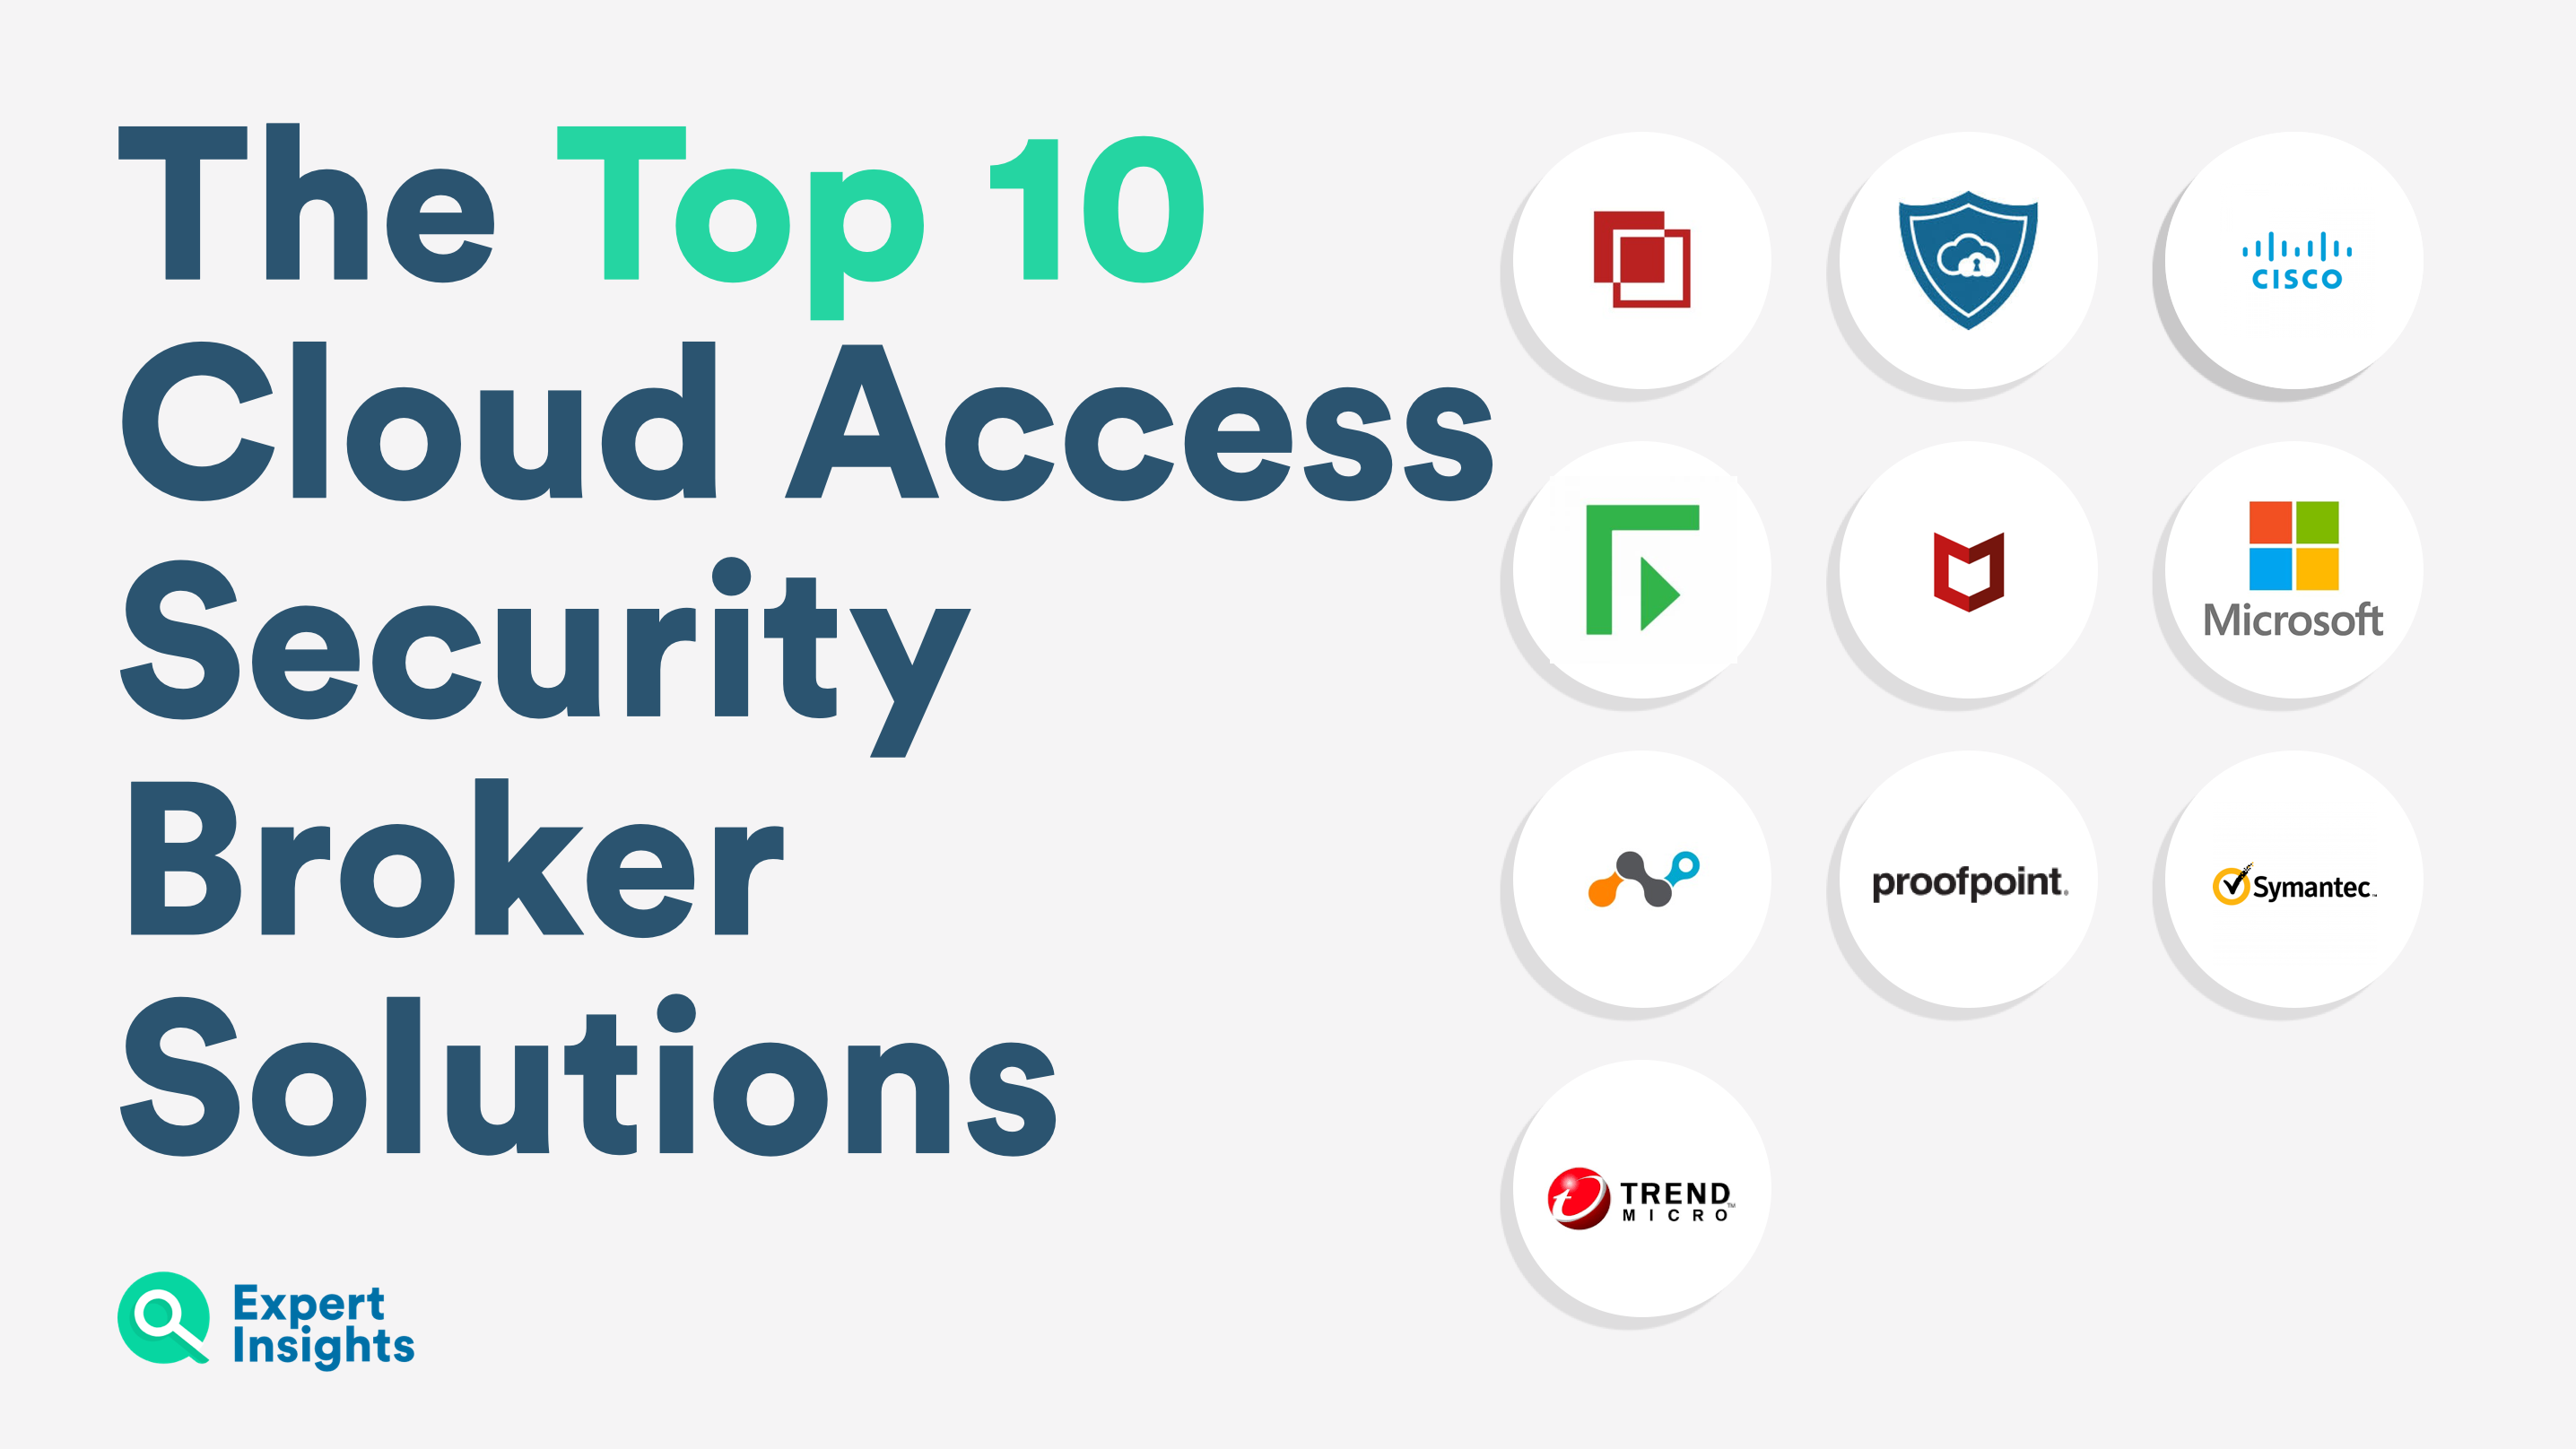 The Top 10 Cloud Access Security Broker Solutions